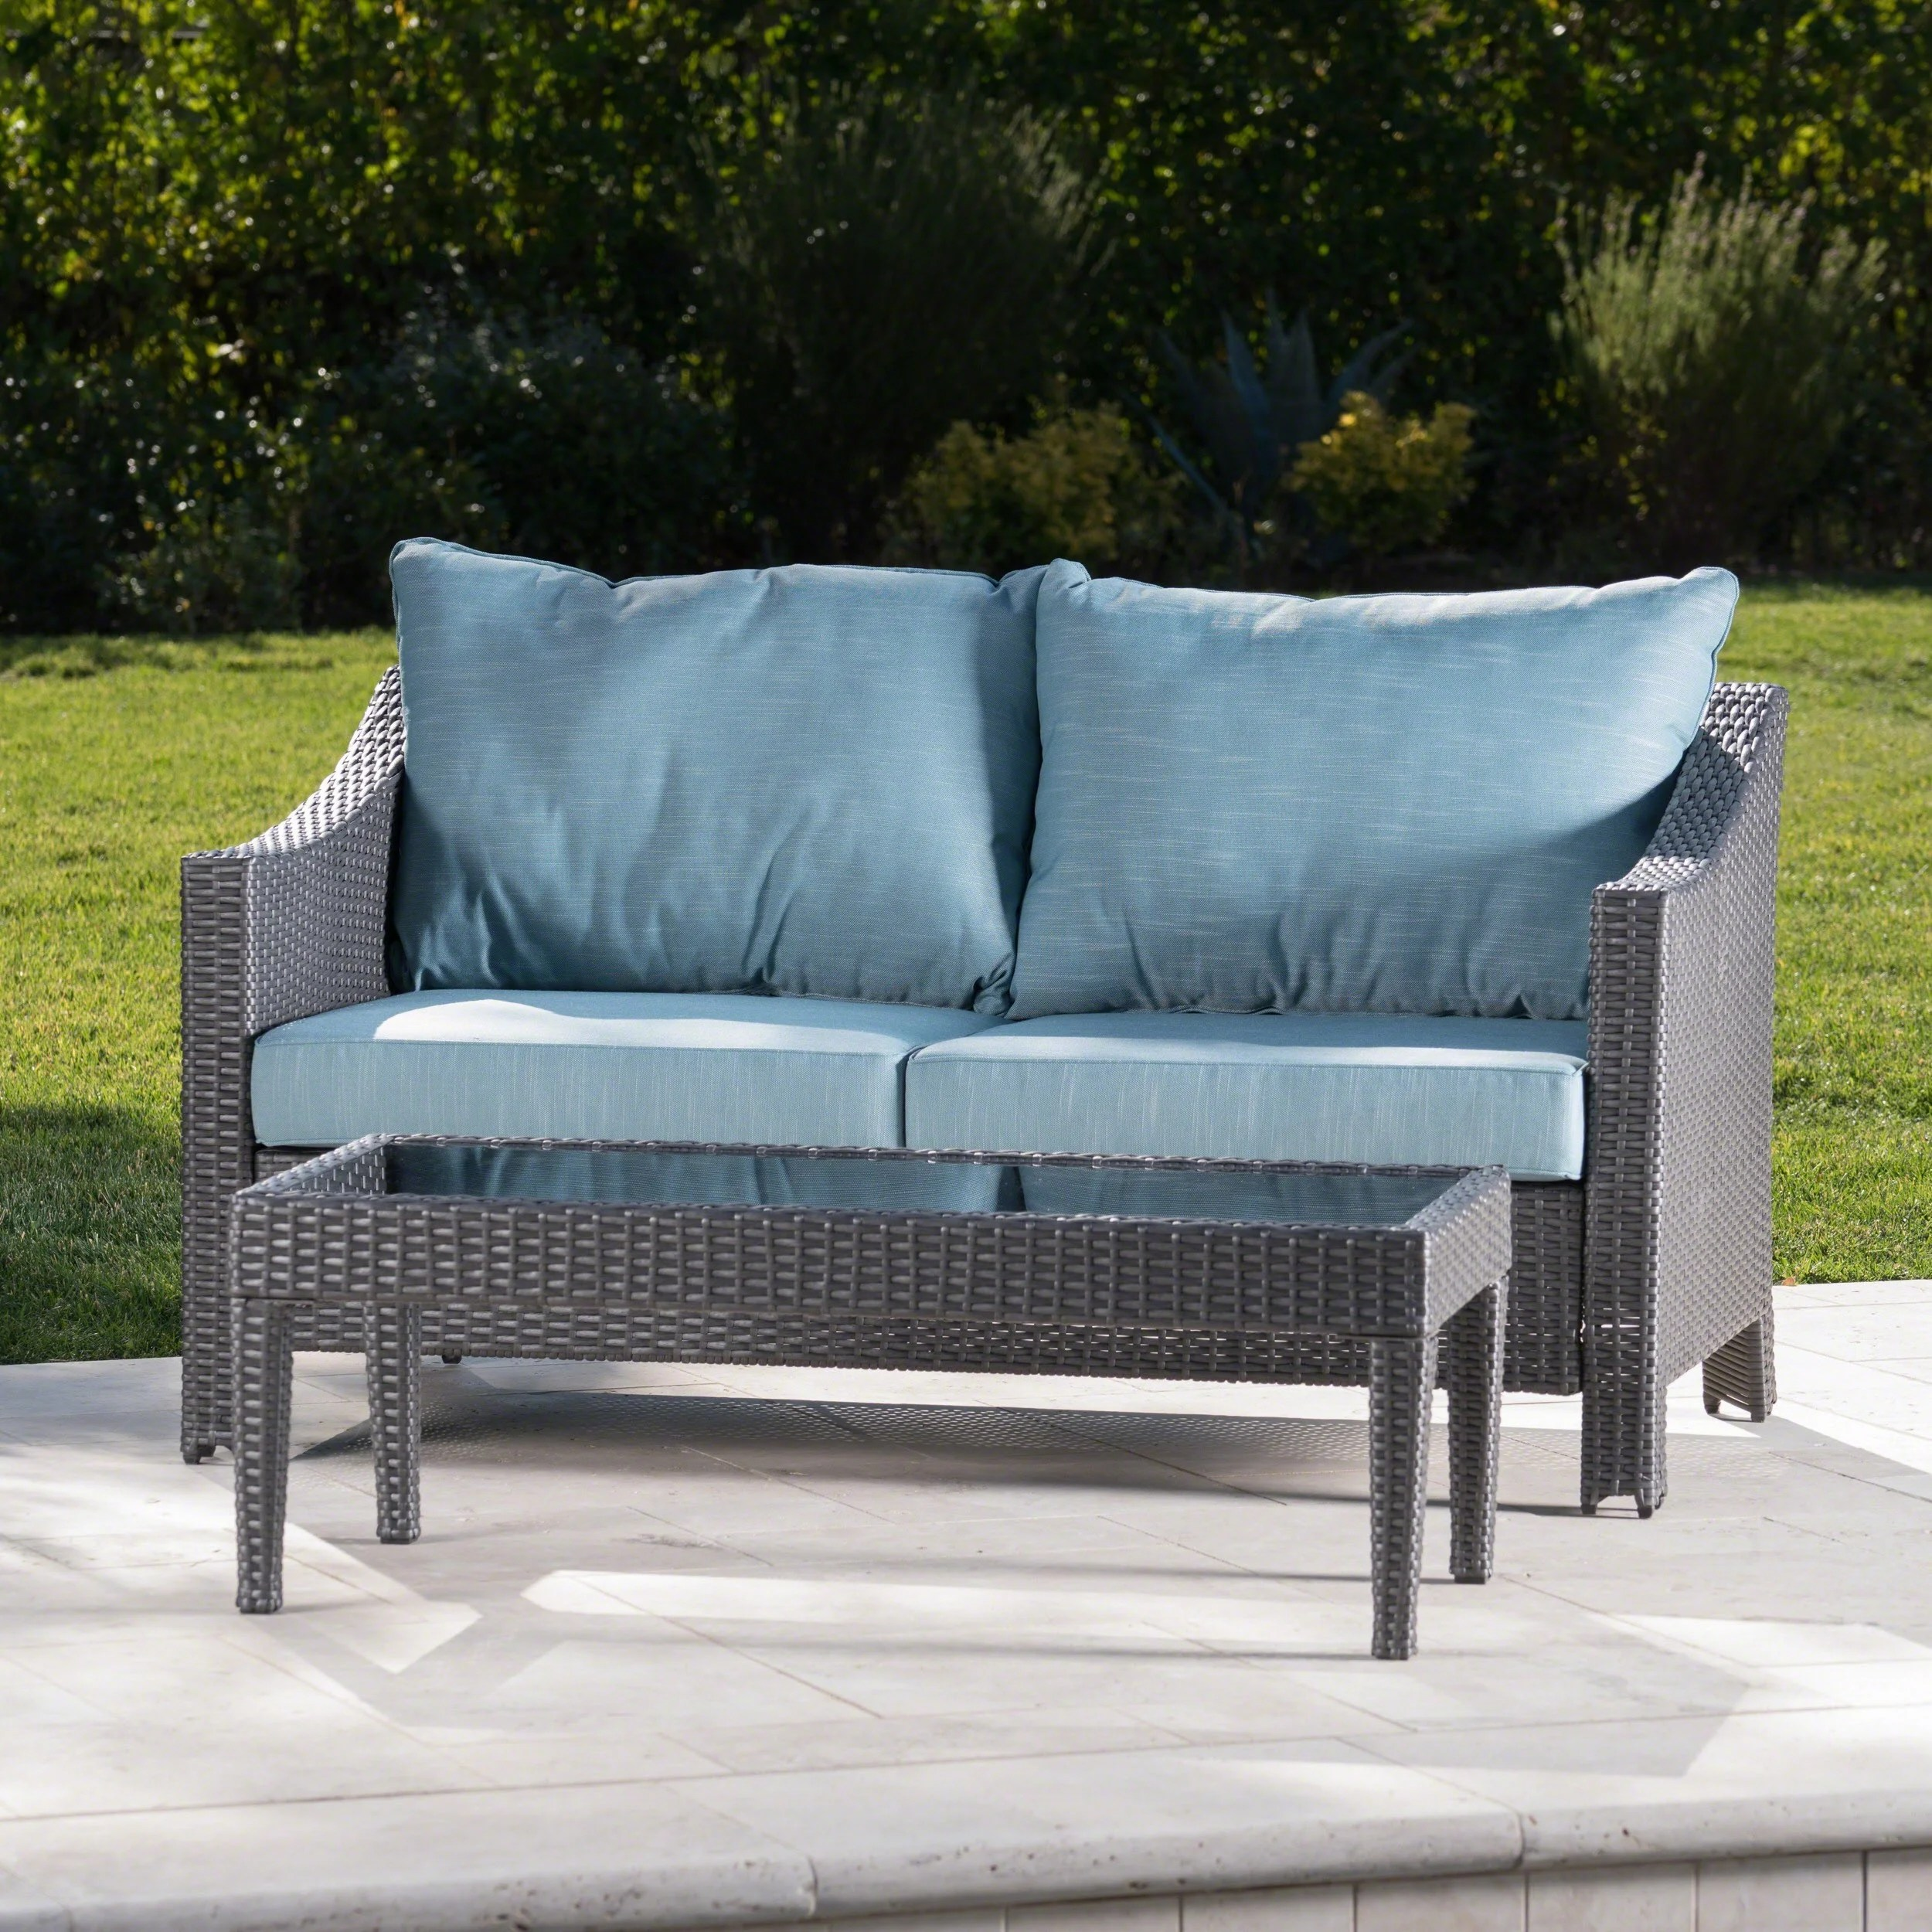 Outdoor Couch Antibes Outdoor 2 Piece Wicker Sofa Set With Cushions By Christopher Knight Home